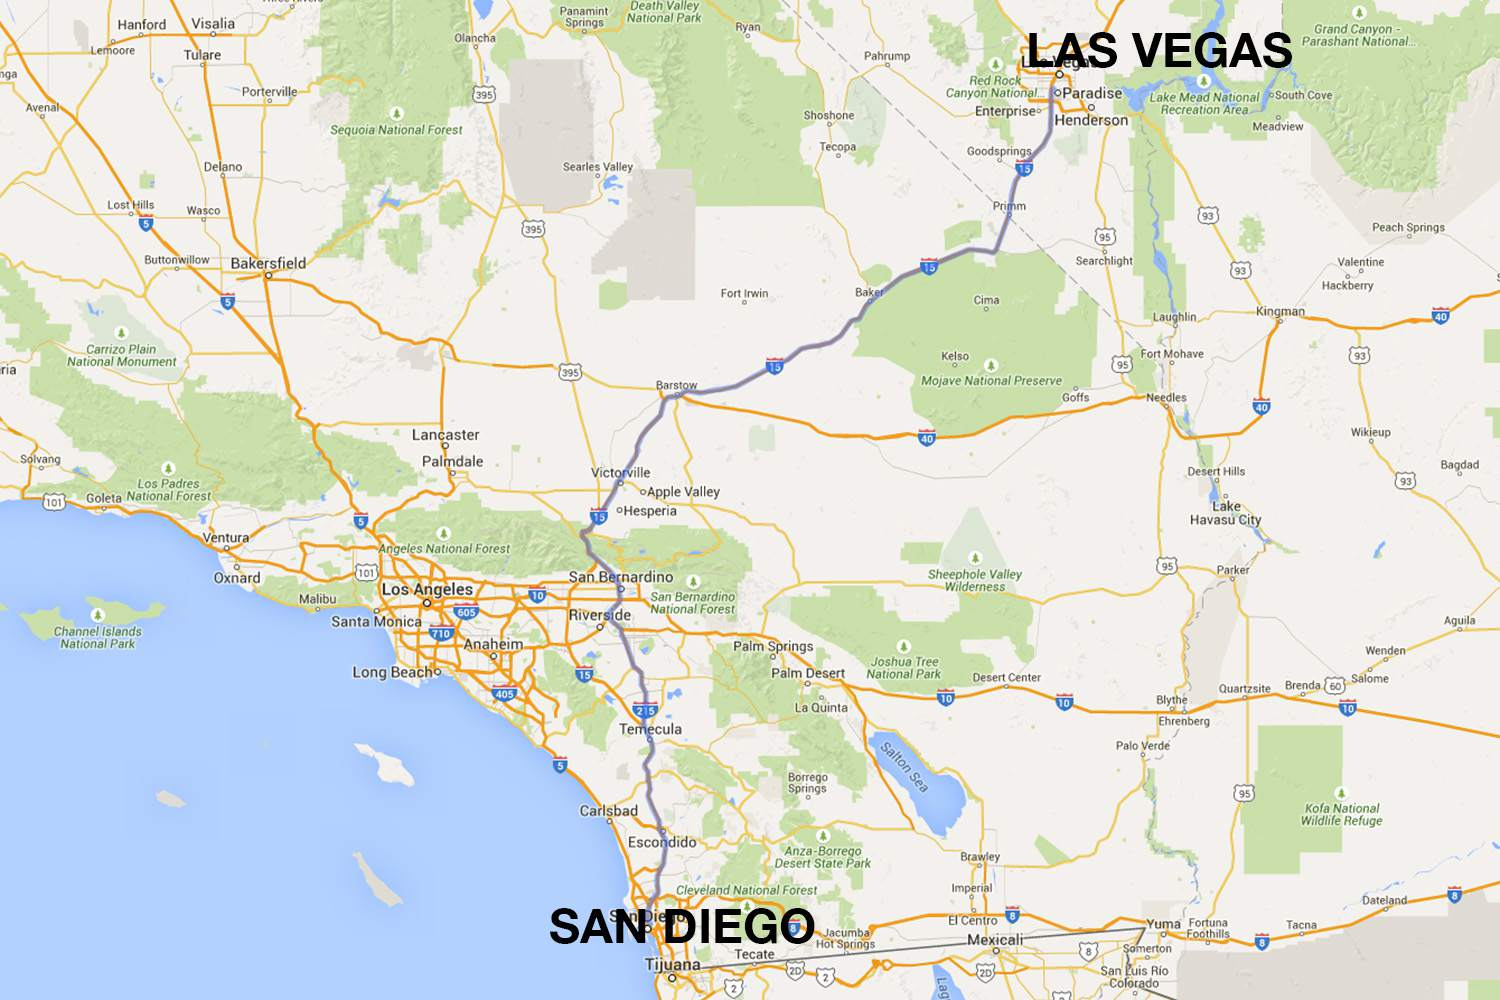 San go to Las Vegas: 4 Ways to Travel Murrieta Ca Map Directions Google on zillow murrieta ca, google maps north charleston sc, google maps lake elsinore, city of murrieta ca, murrieta hot springs ca, google maps newark de, california murrieta ca, google maps new castle de, streets in murrieta ca, snow in murrieta ca, google maps new york ny, map of ca, weather murrieta ca, google maps car, photography murrieta ca, pennysaver murrieta ca, google maps murray ky, google maps new bedford ma,